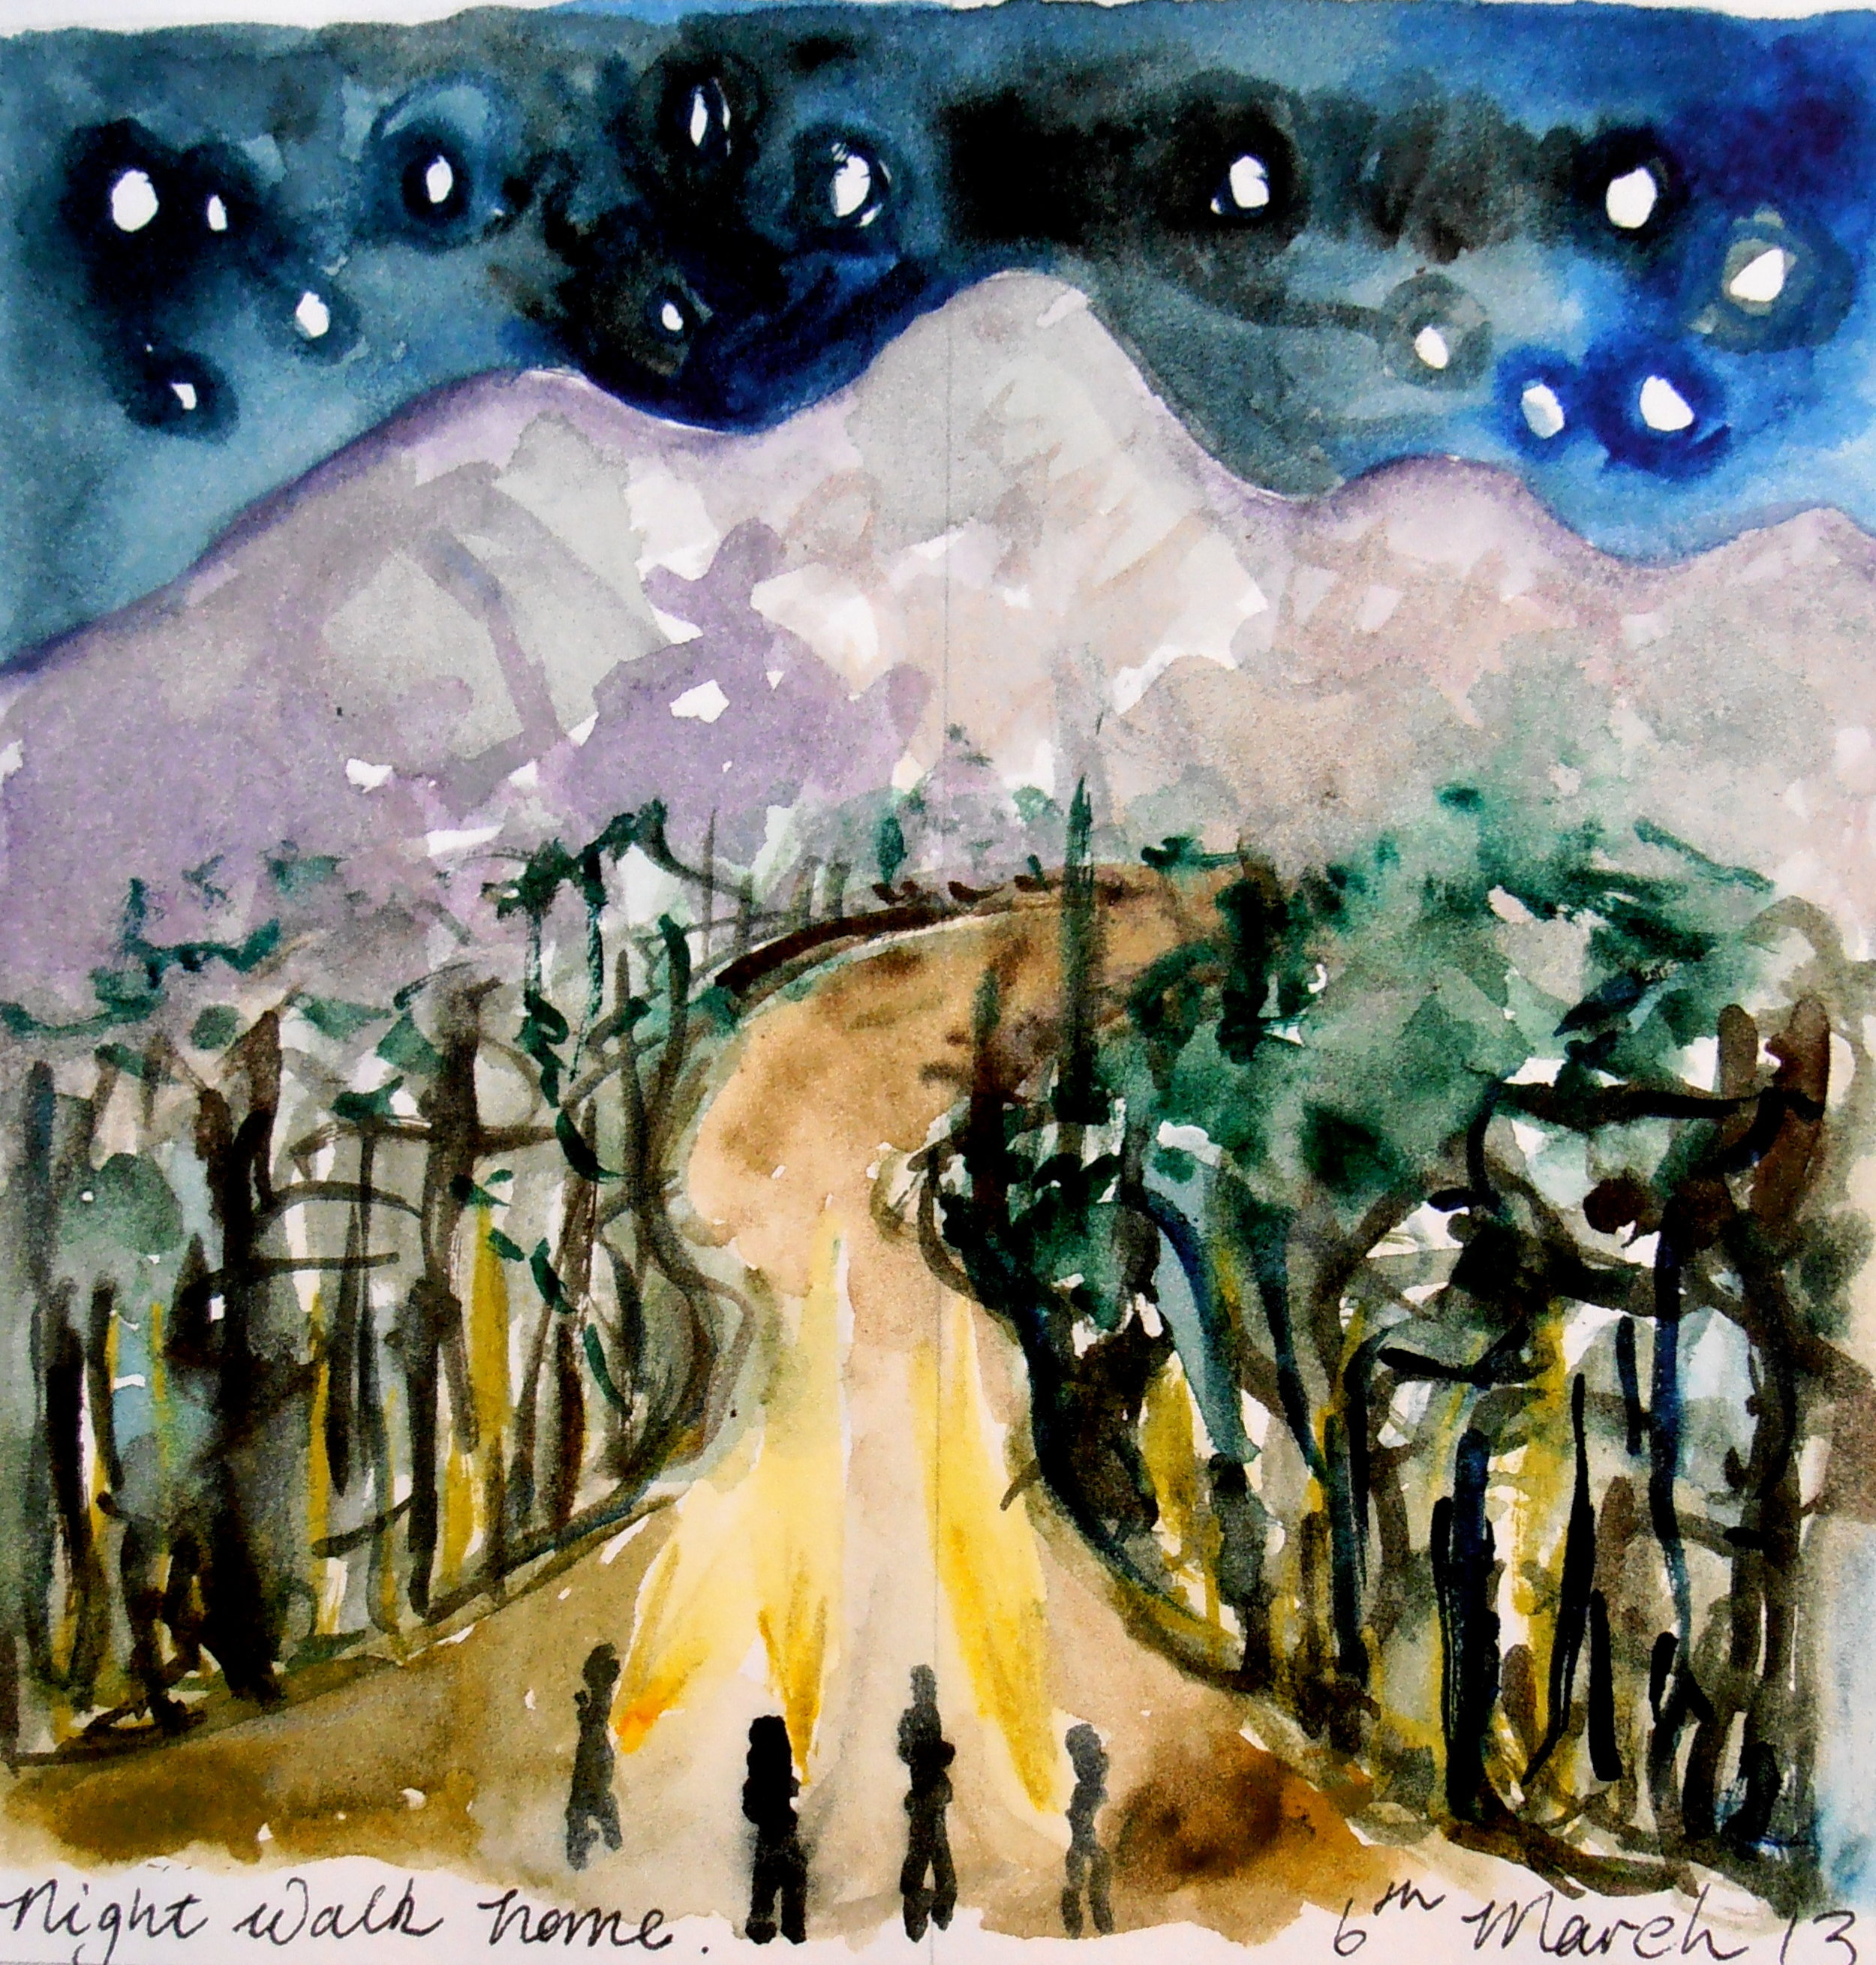 Regan O'Callaghan Night walk home Sachaqa Art Centre, Peru, Amazon, watercolour visual diary